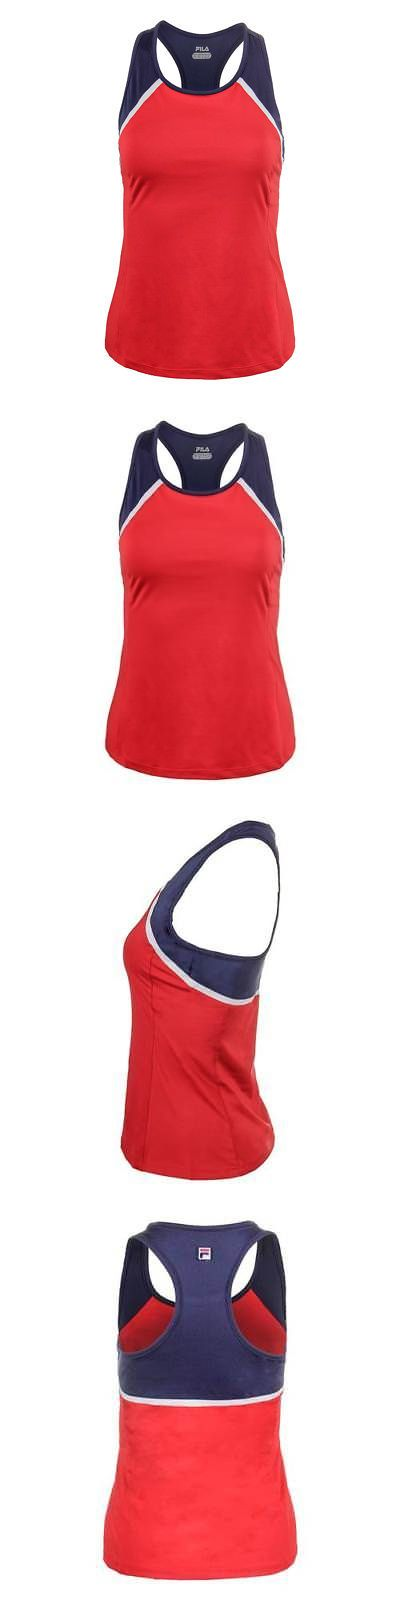 Shirts and Tops 70900: Fila - Women`S Heritage Racerback Tennis Tank Chinese Red - (Tw171vx4-622S17) -> BUY IT NOW ONLY: $46.74 on eBay!